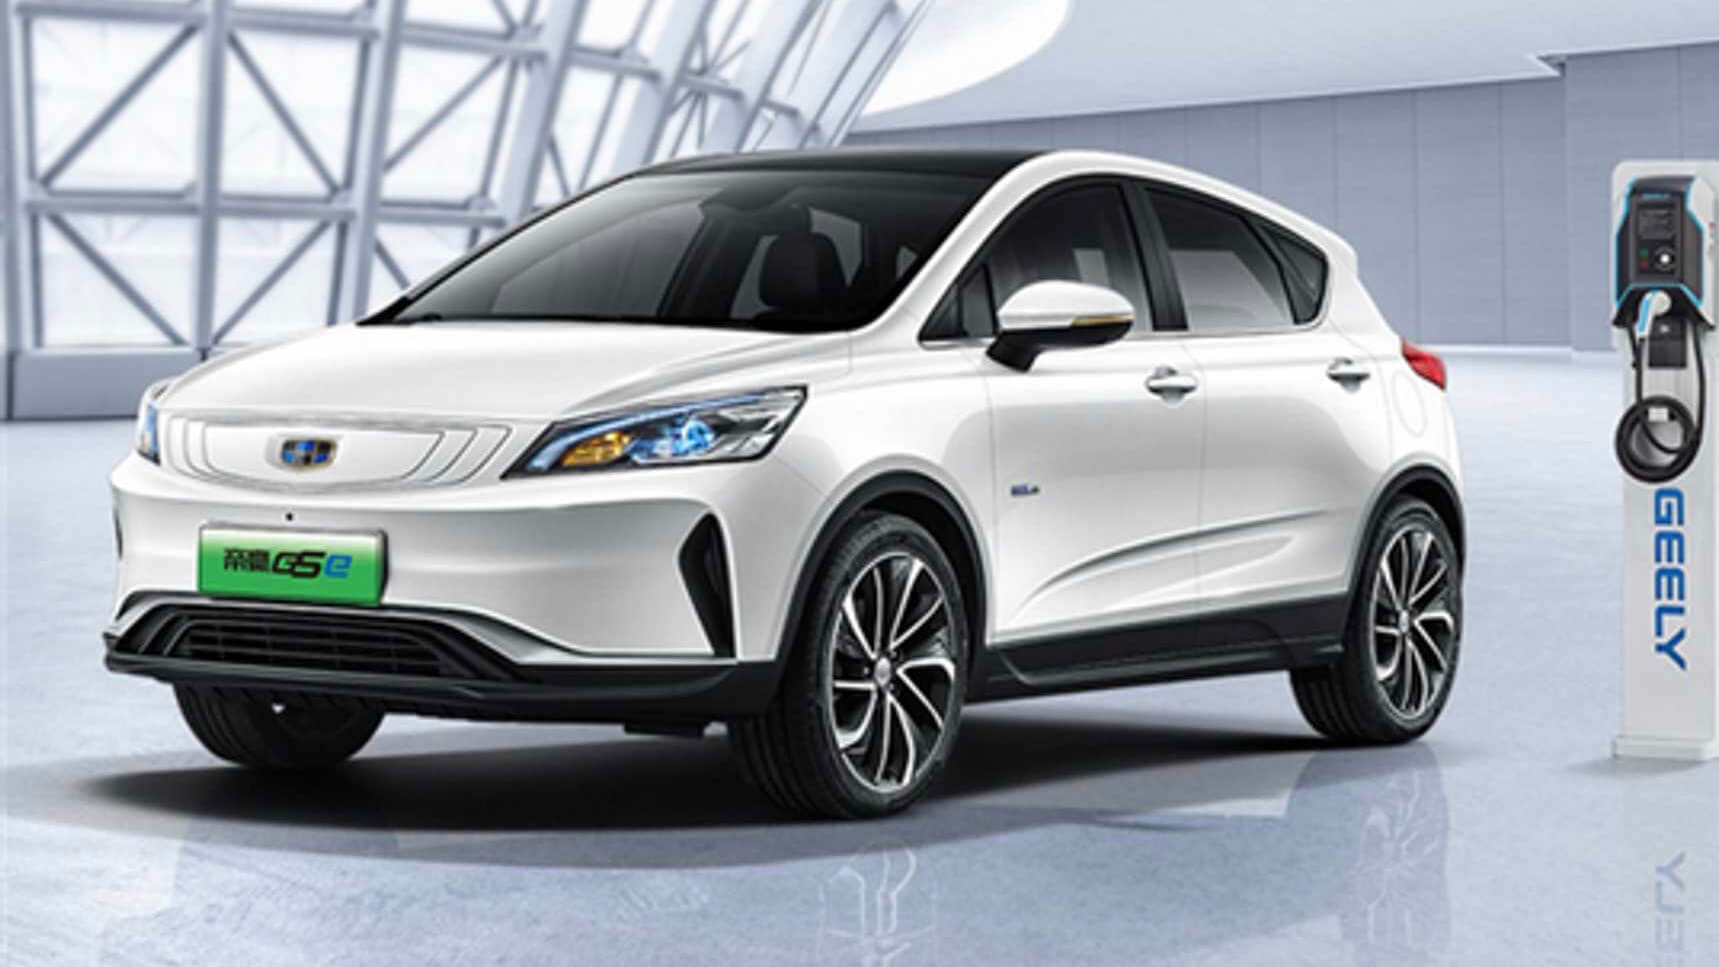 Geely Emgrand GSe electric car